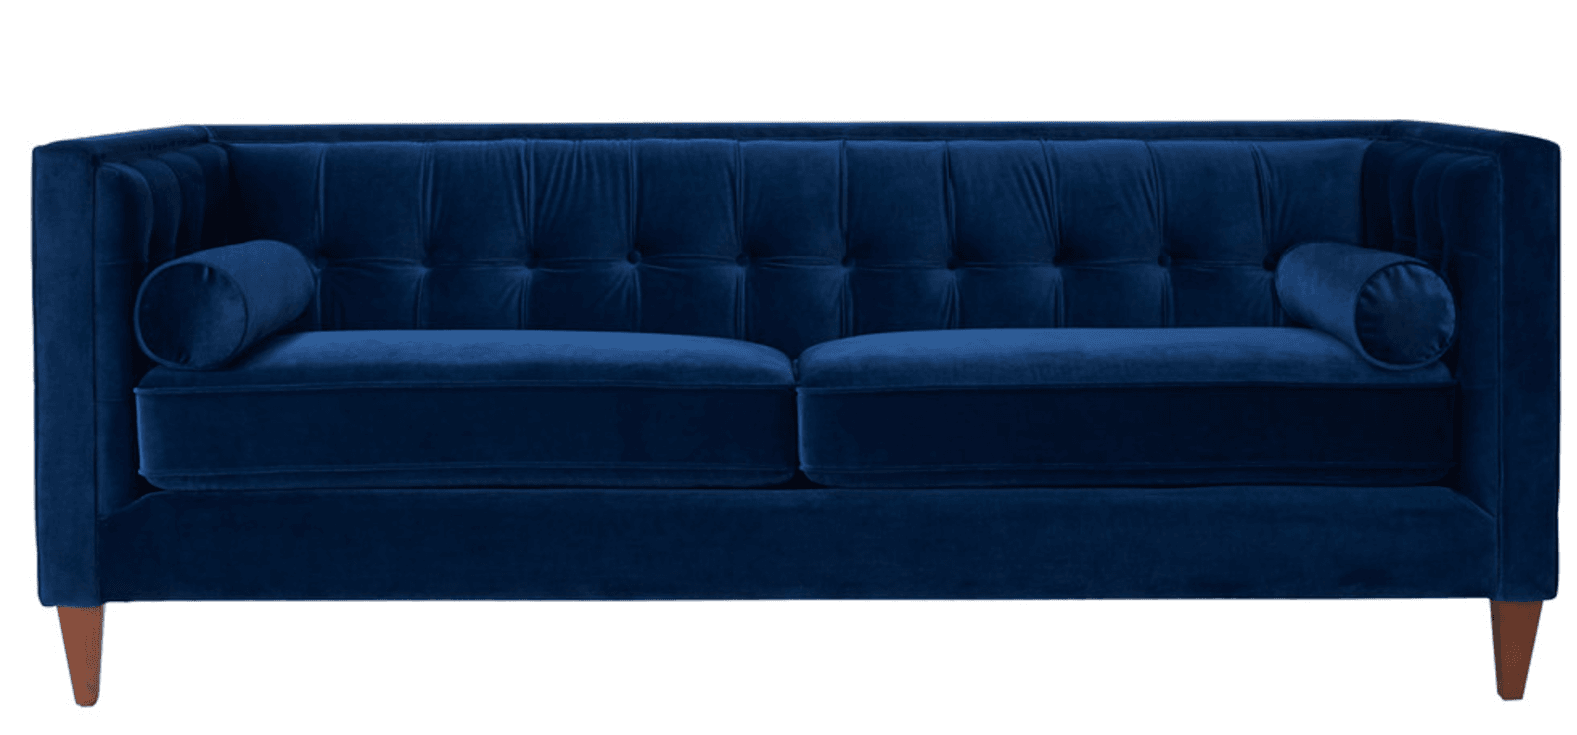 spring color refresh navy sofa.png